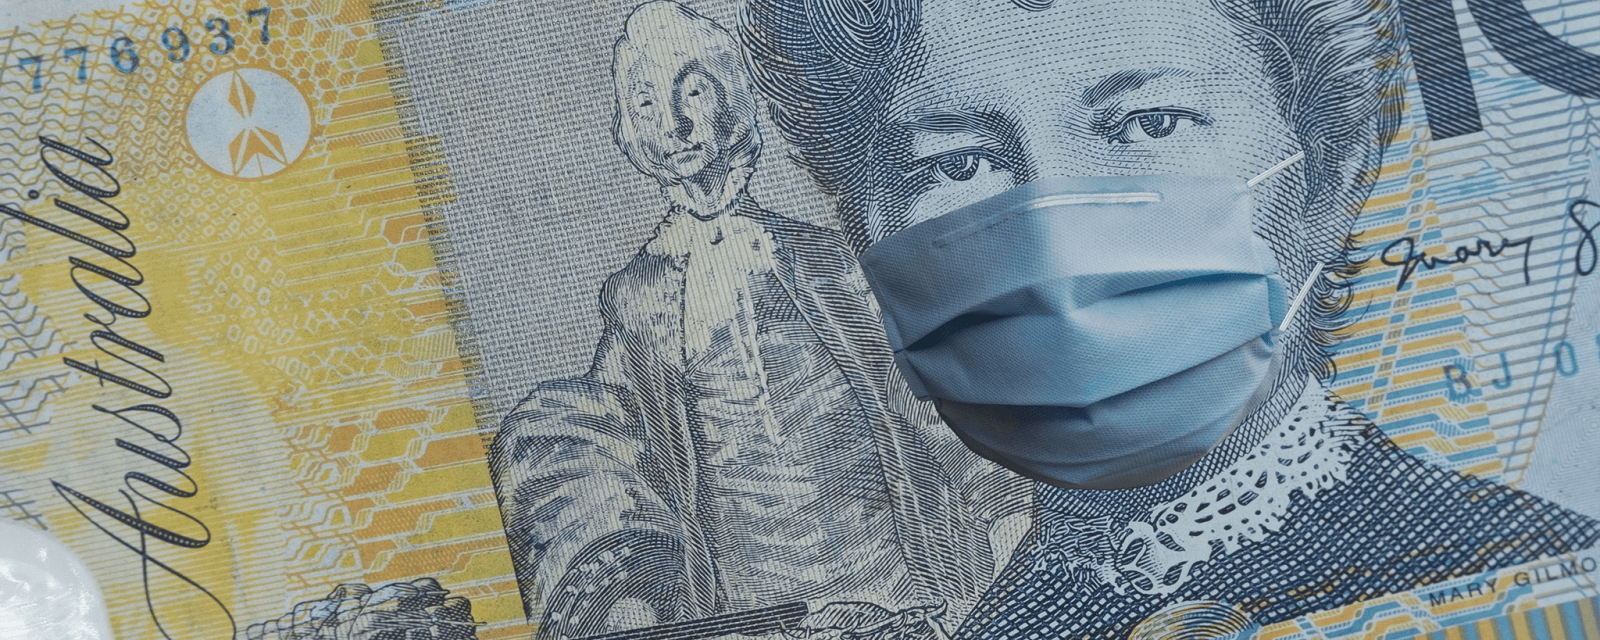 Accessing your SMSF early during the Covid-19 pandemic